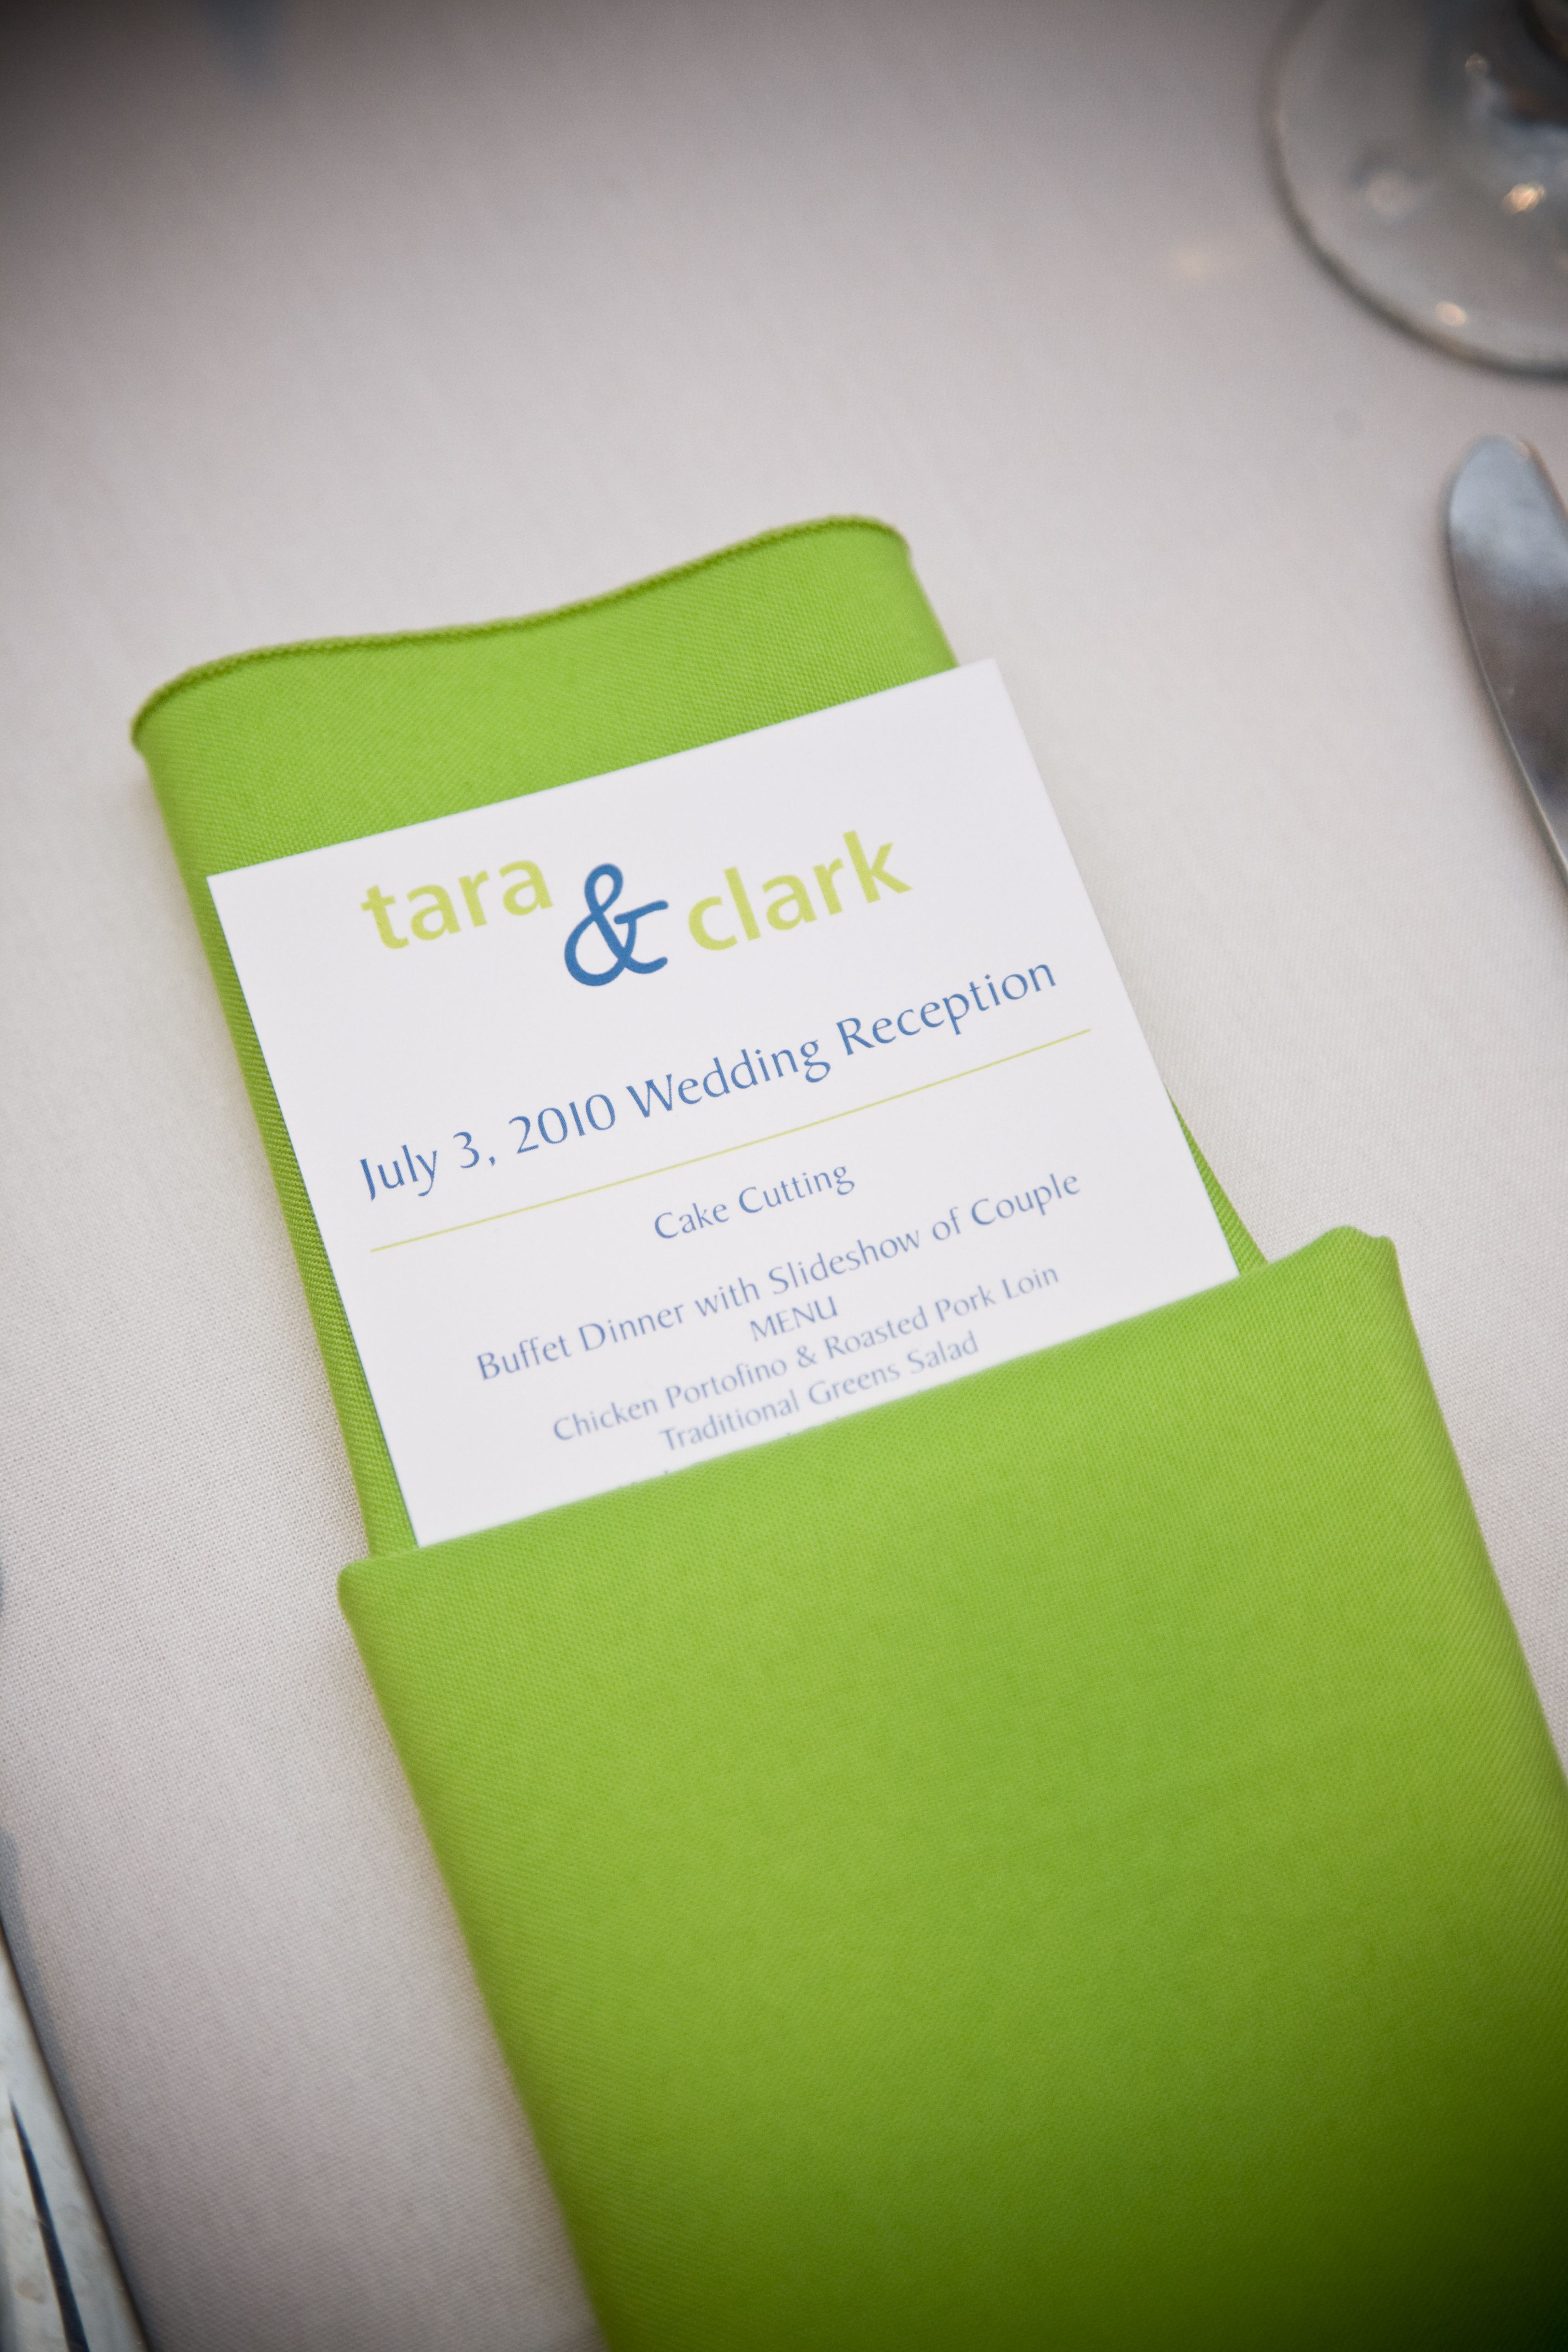 Wedding Reception Timeline And Menu In Napkin Weddings Pinterest